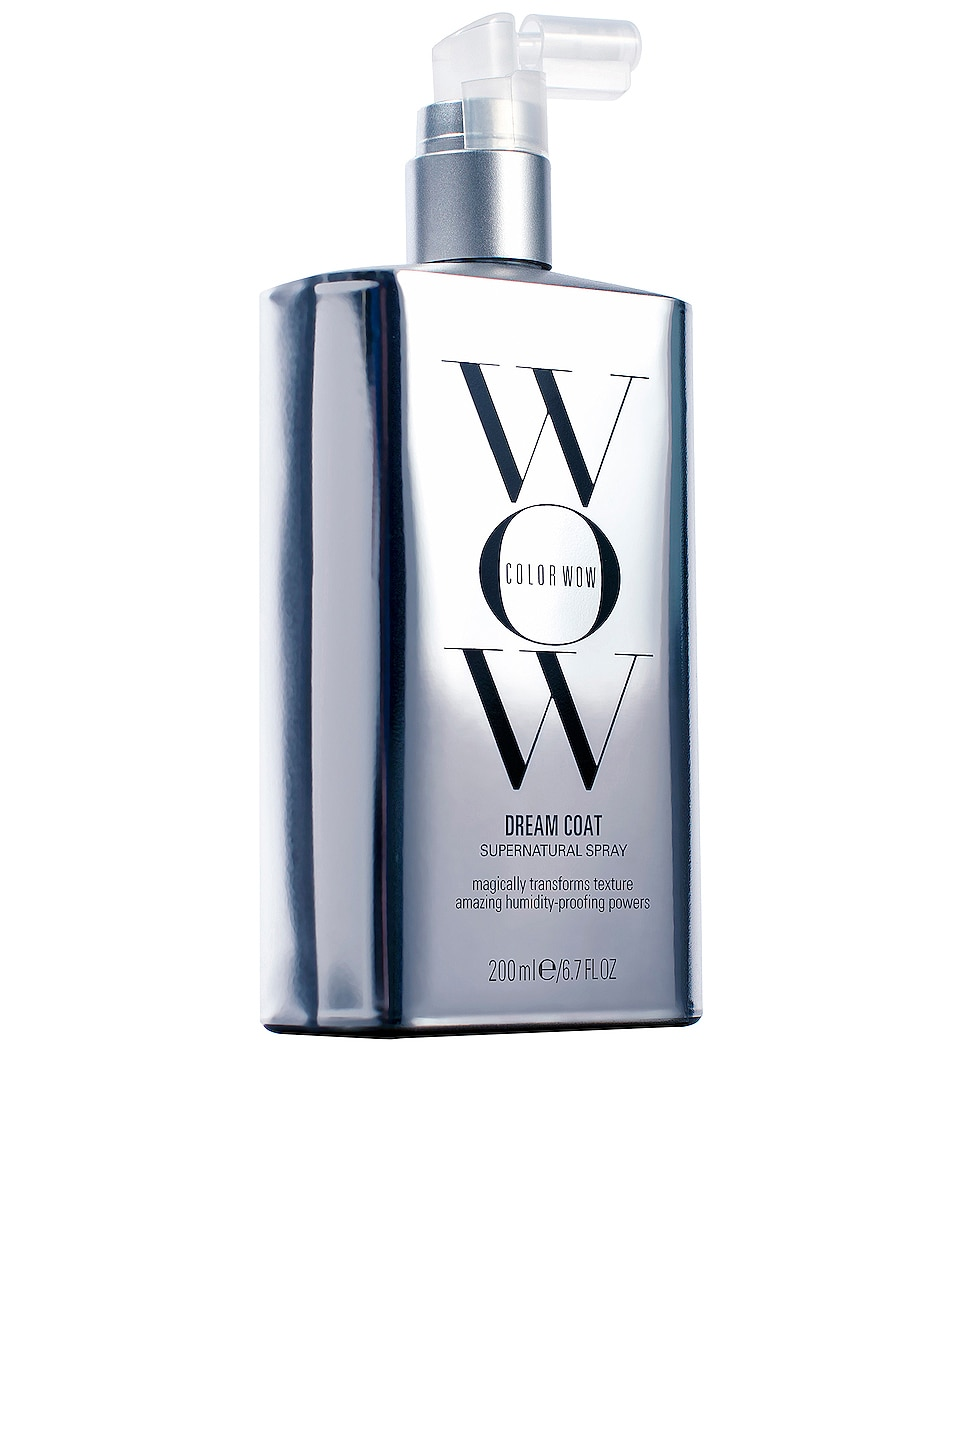 COLOR WOW Dream Coat Supernatural Sealant in Beauty: Na